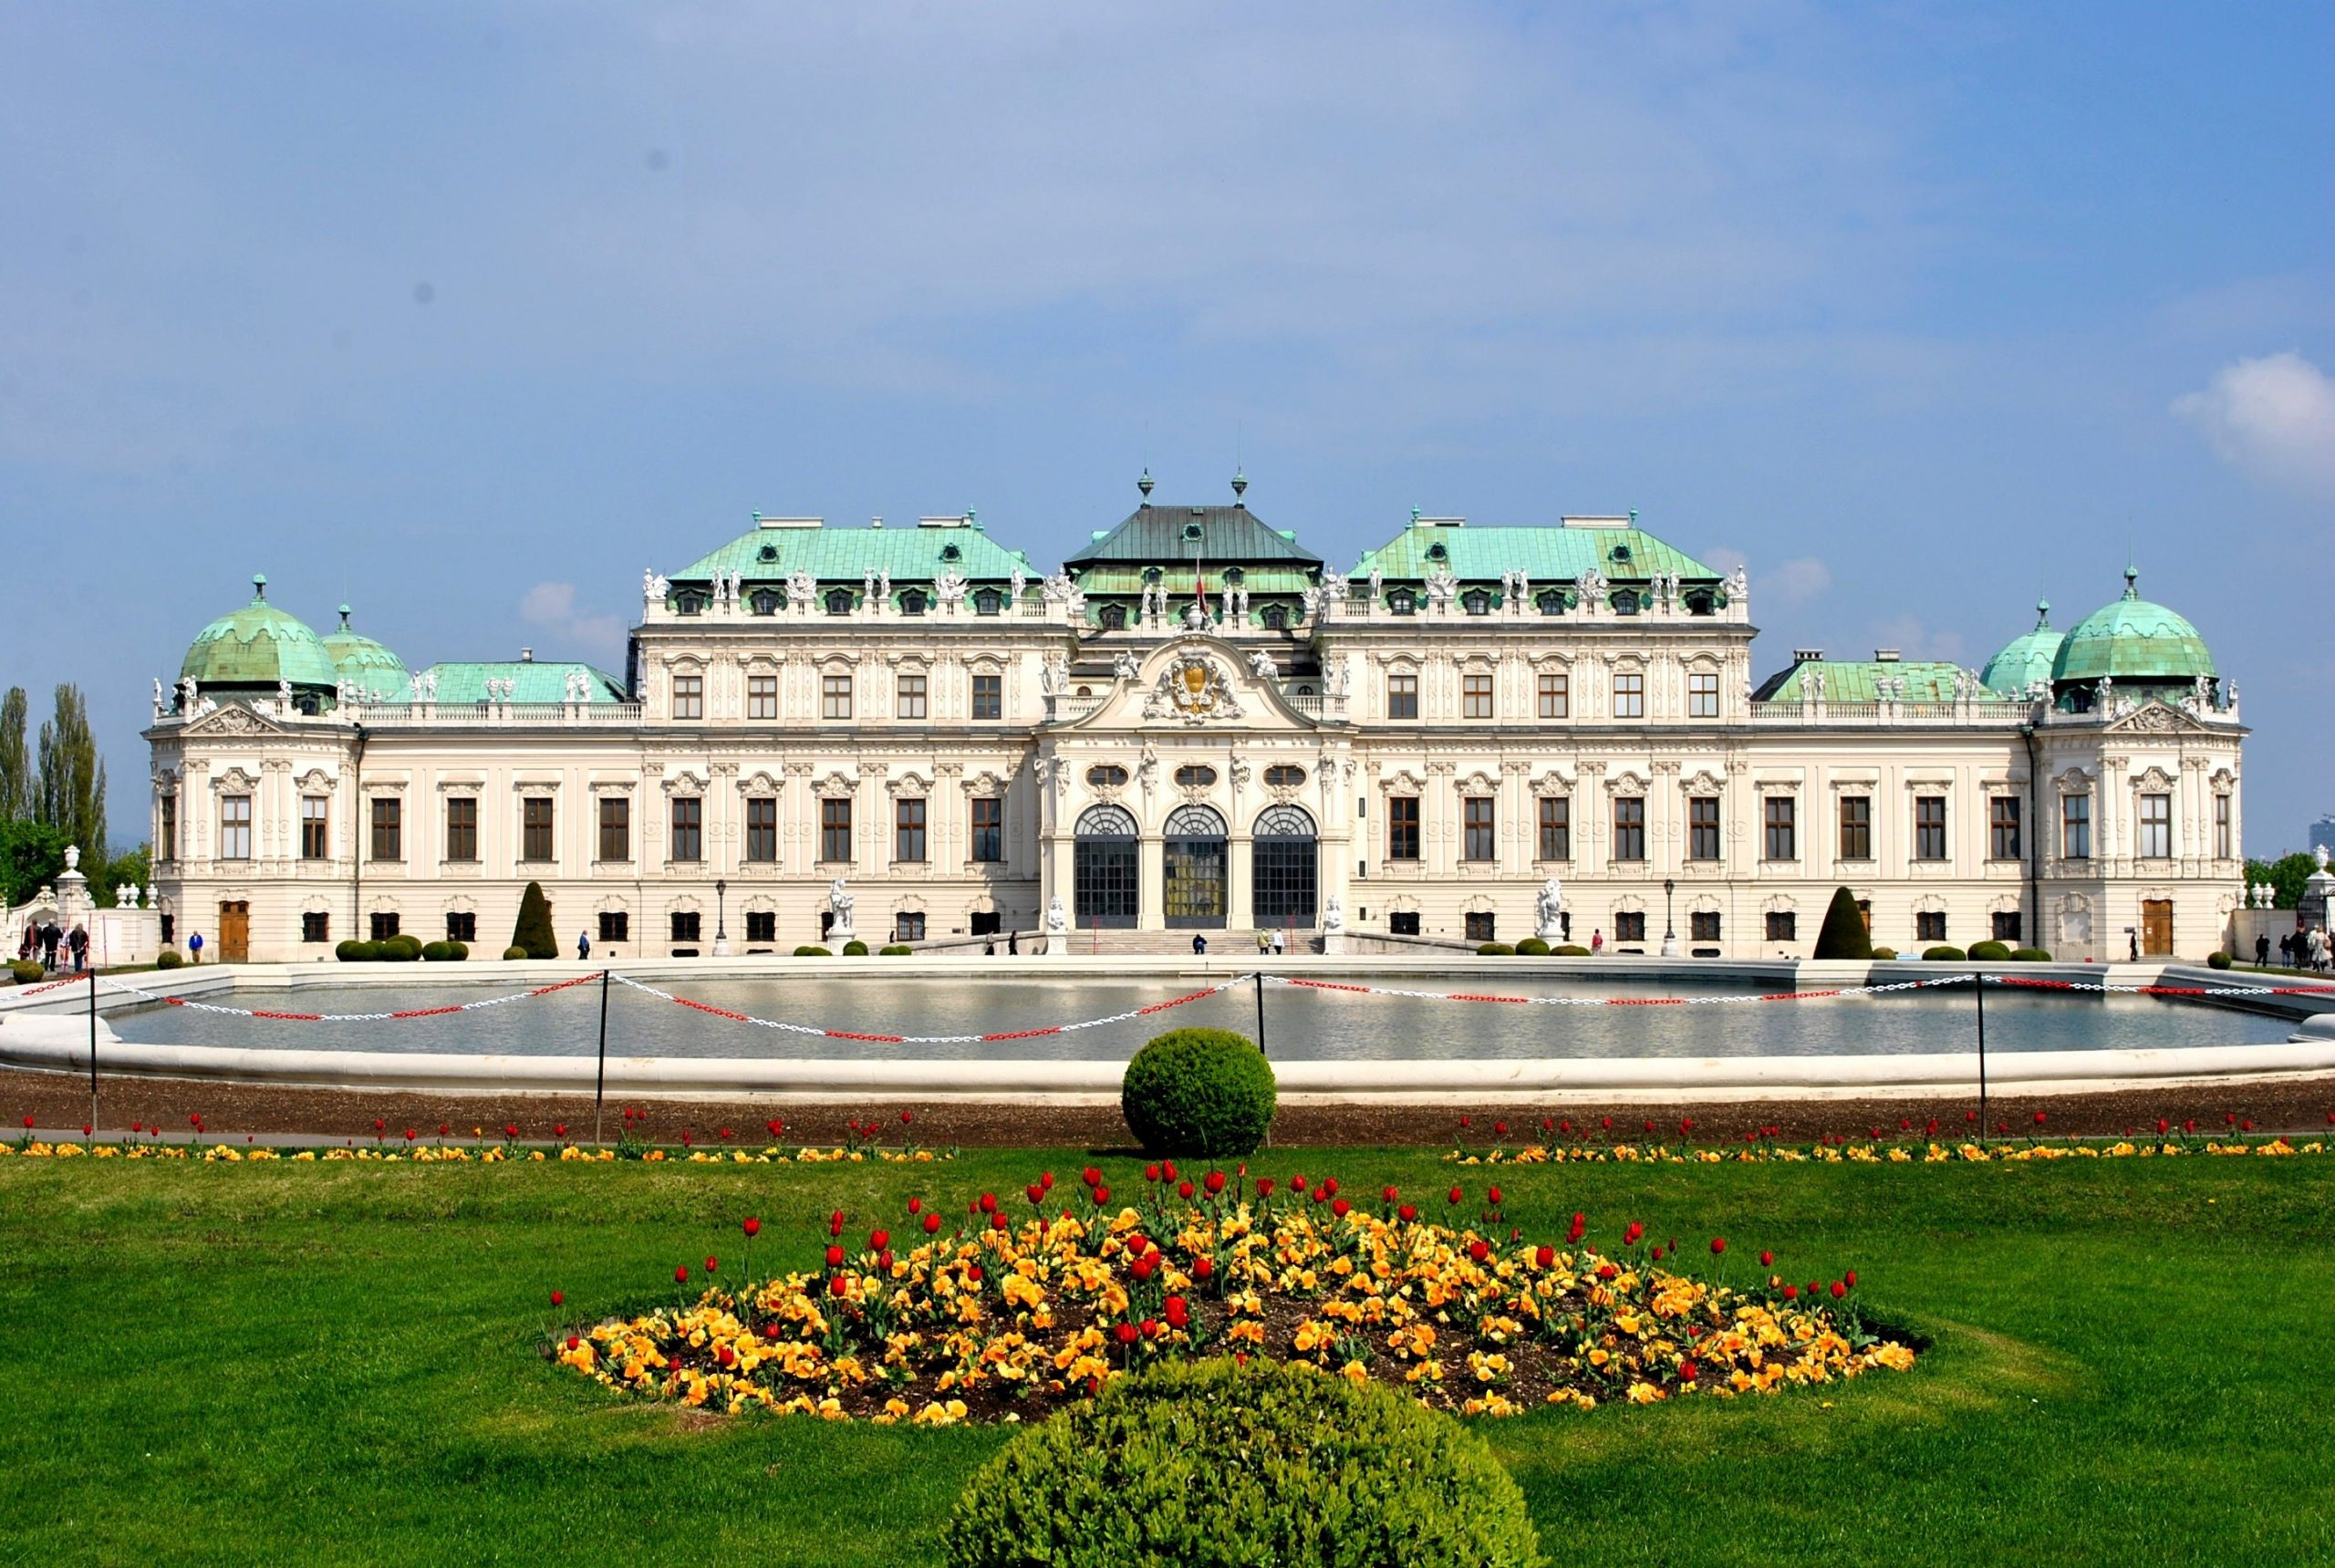 Visiting The Belvedere Palace in Vienna- A Handy Guide